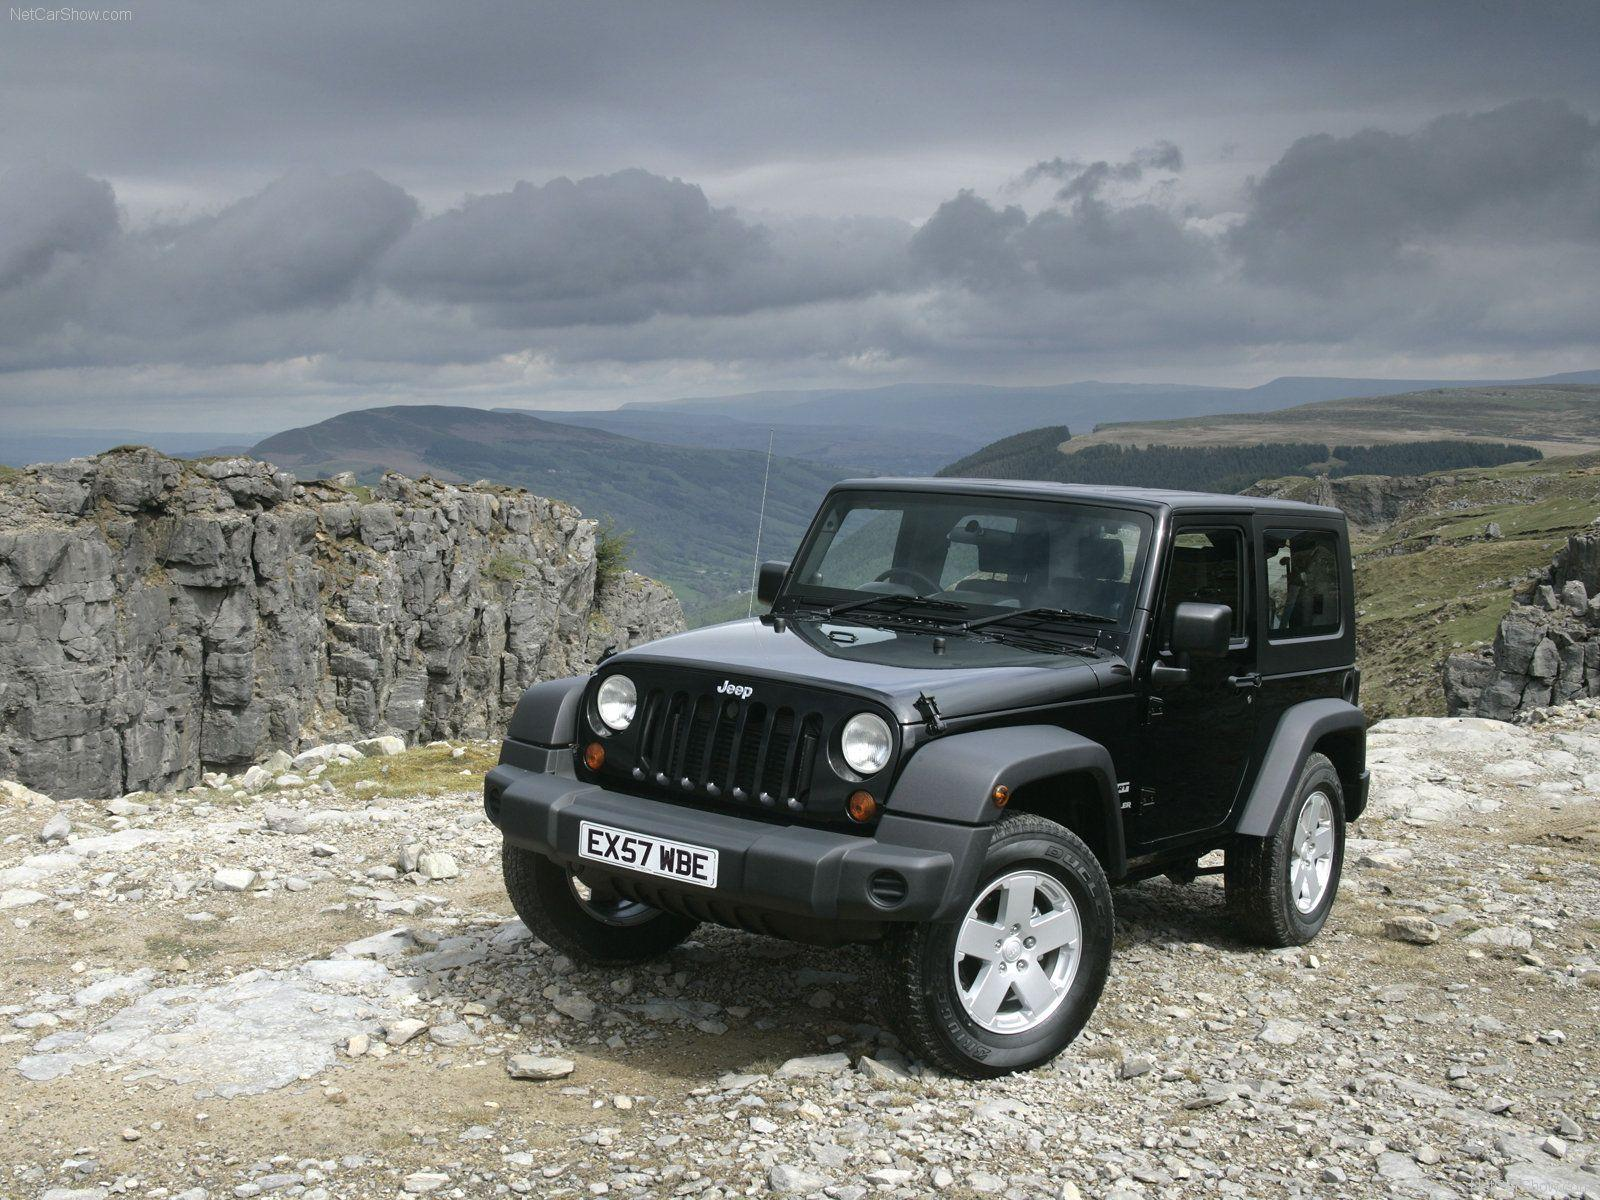 Jeep Car Images Hd: Jeep Wrangler Wallpapers